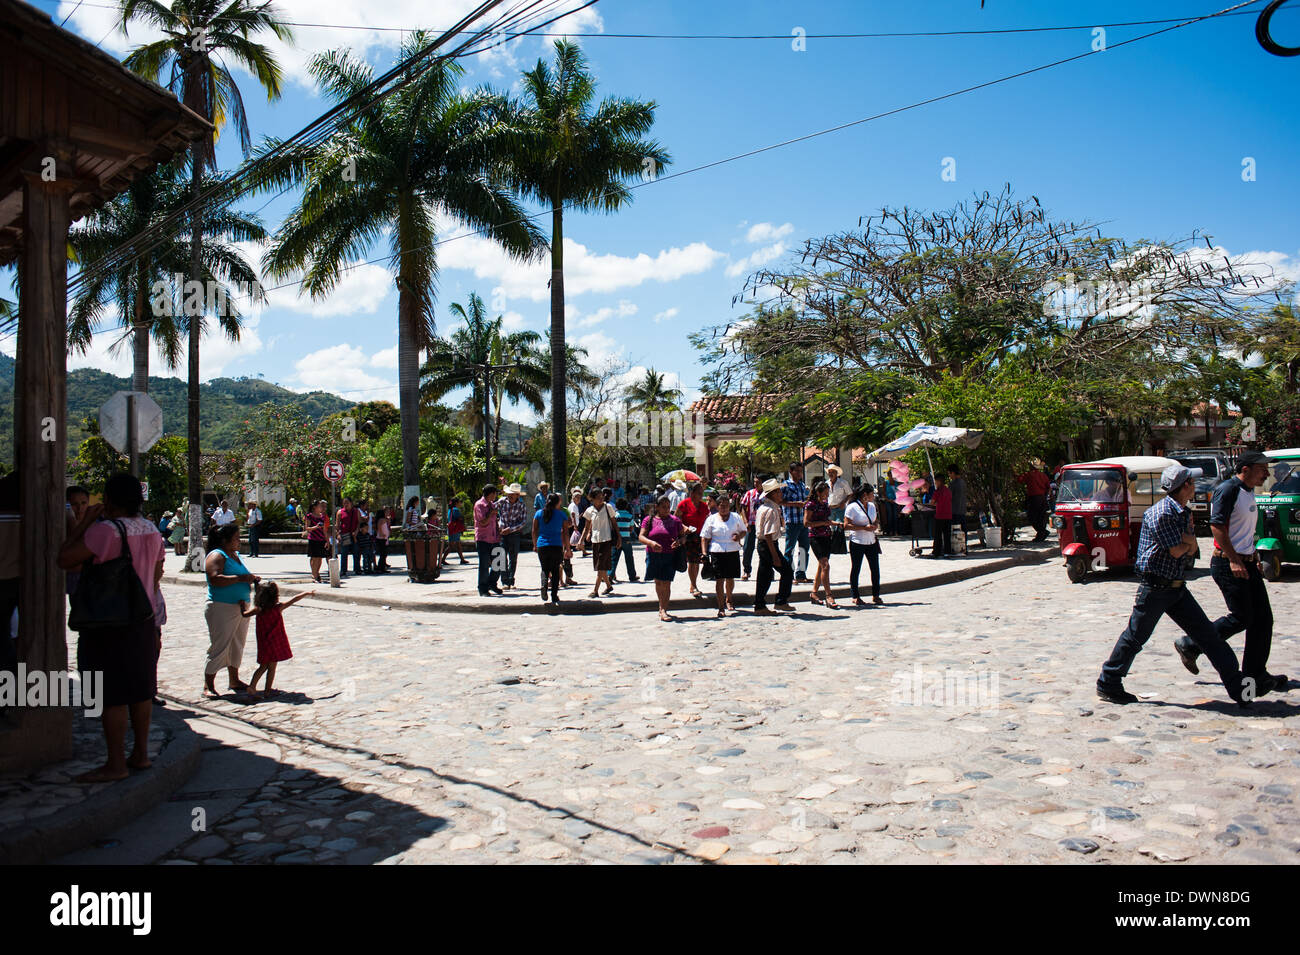 People walk through the busy Parque Central in the town of Copán Ruinas in Honduras. - Stock Image